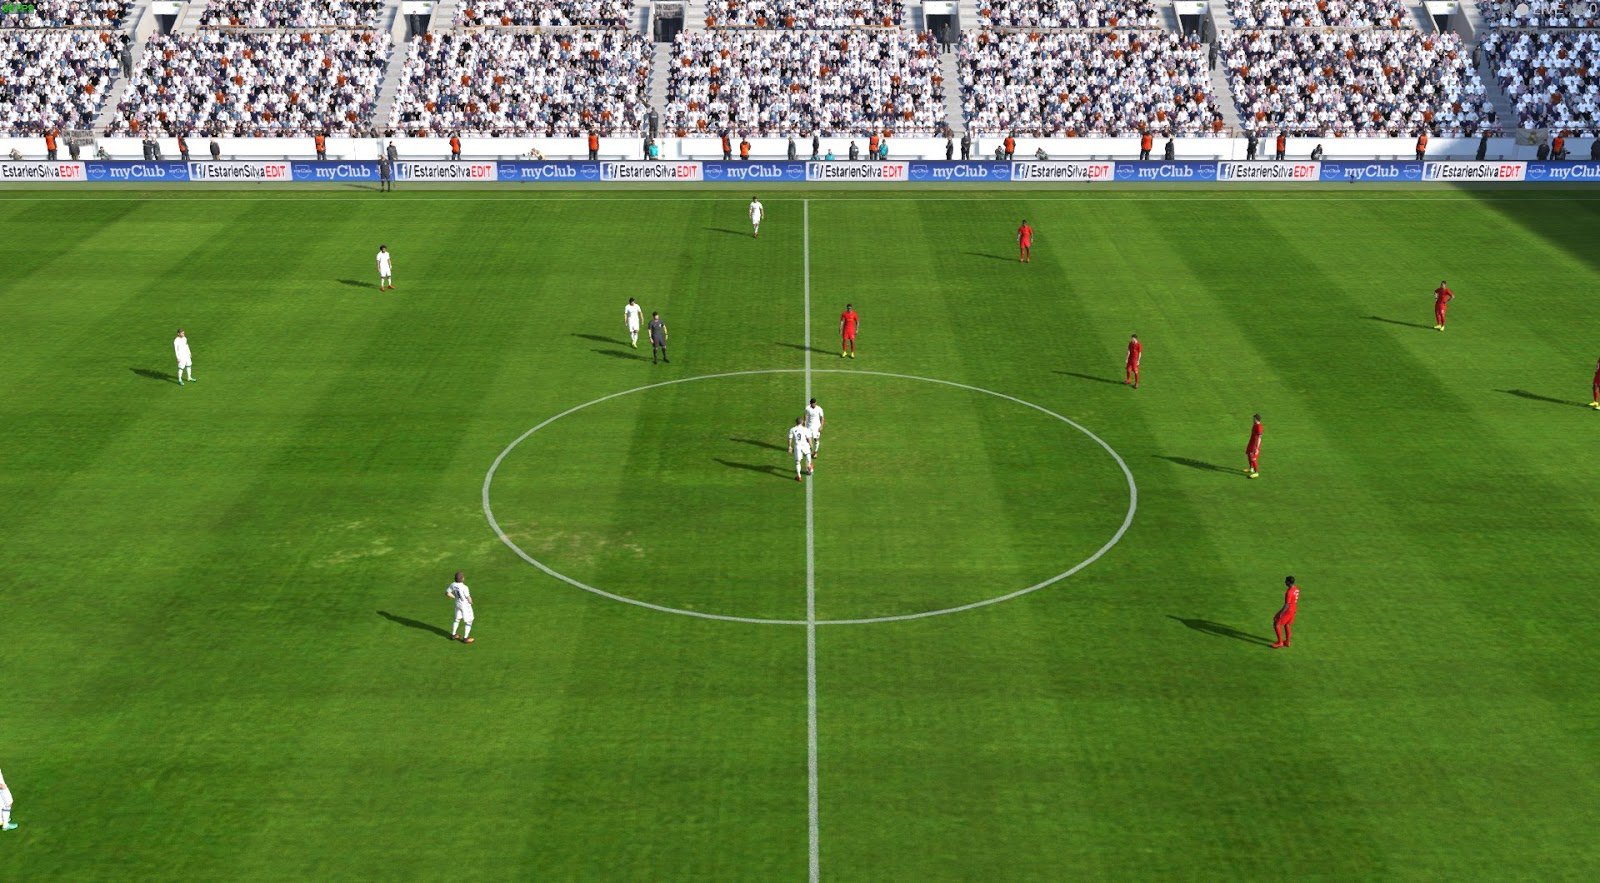 Pes 2017 graphics | PES 2019 Master League Graphics for PES 2017